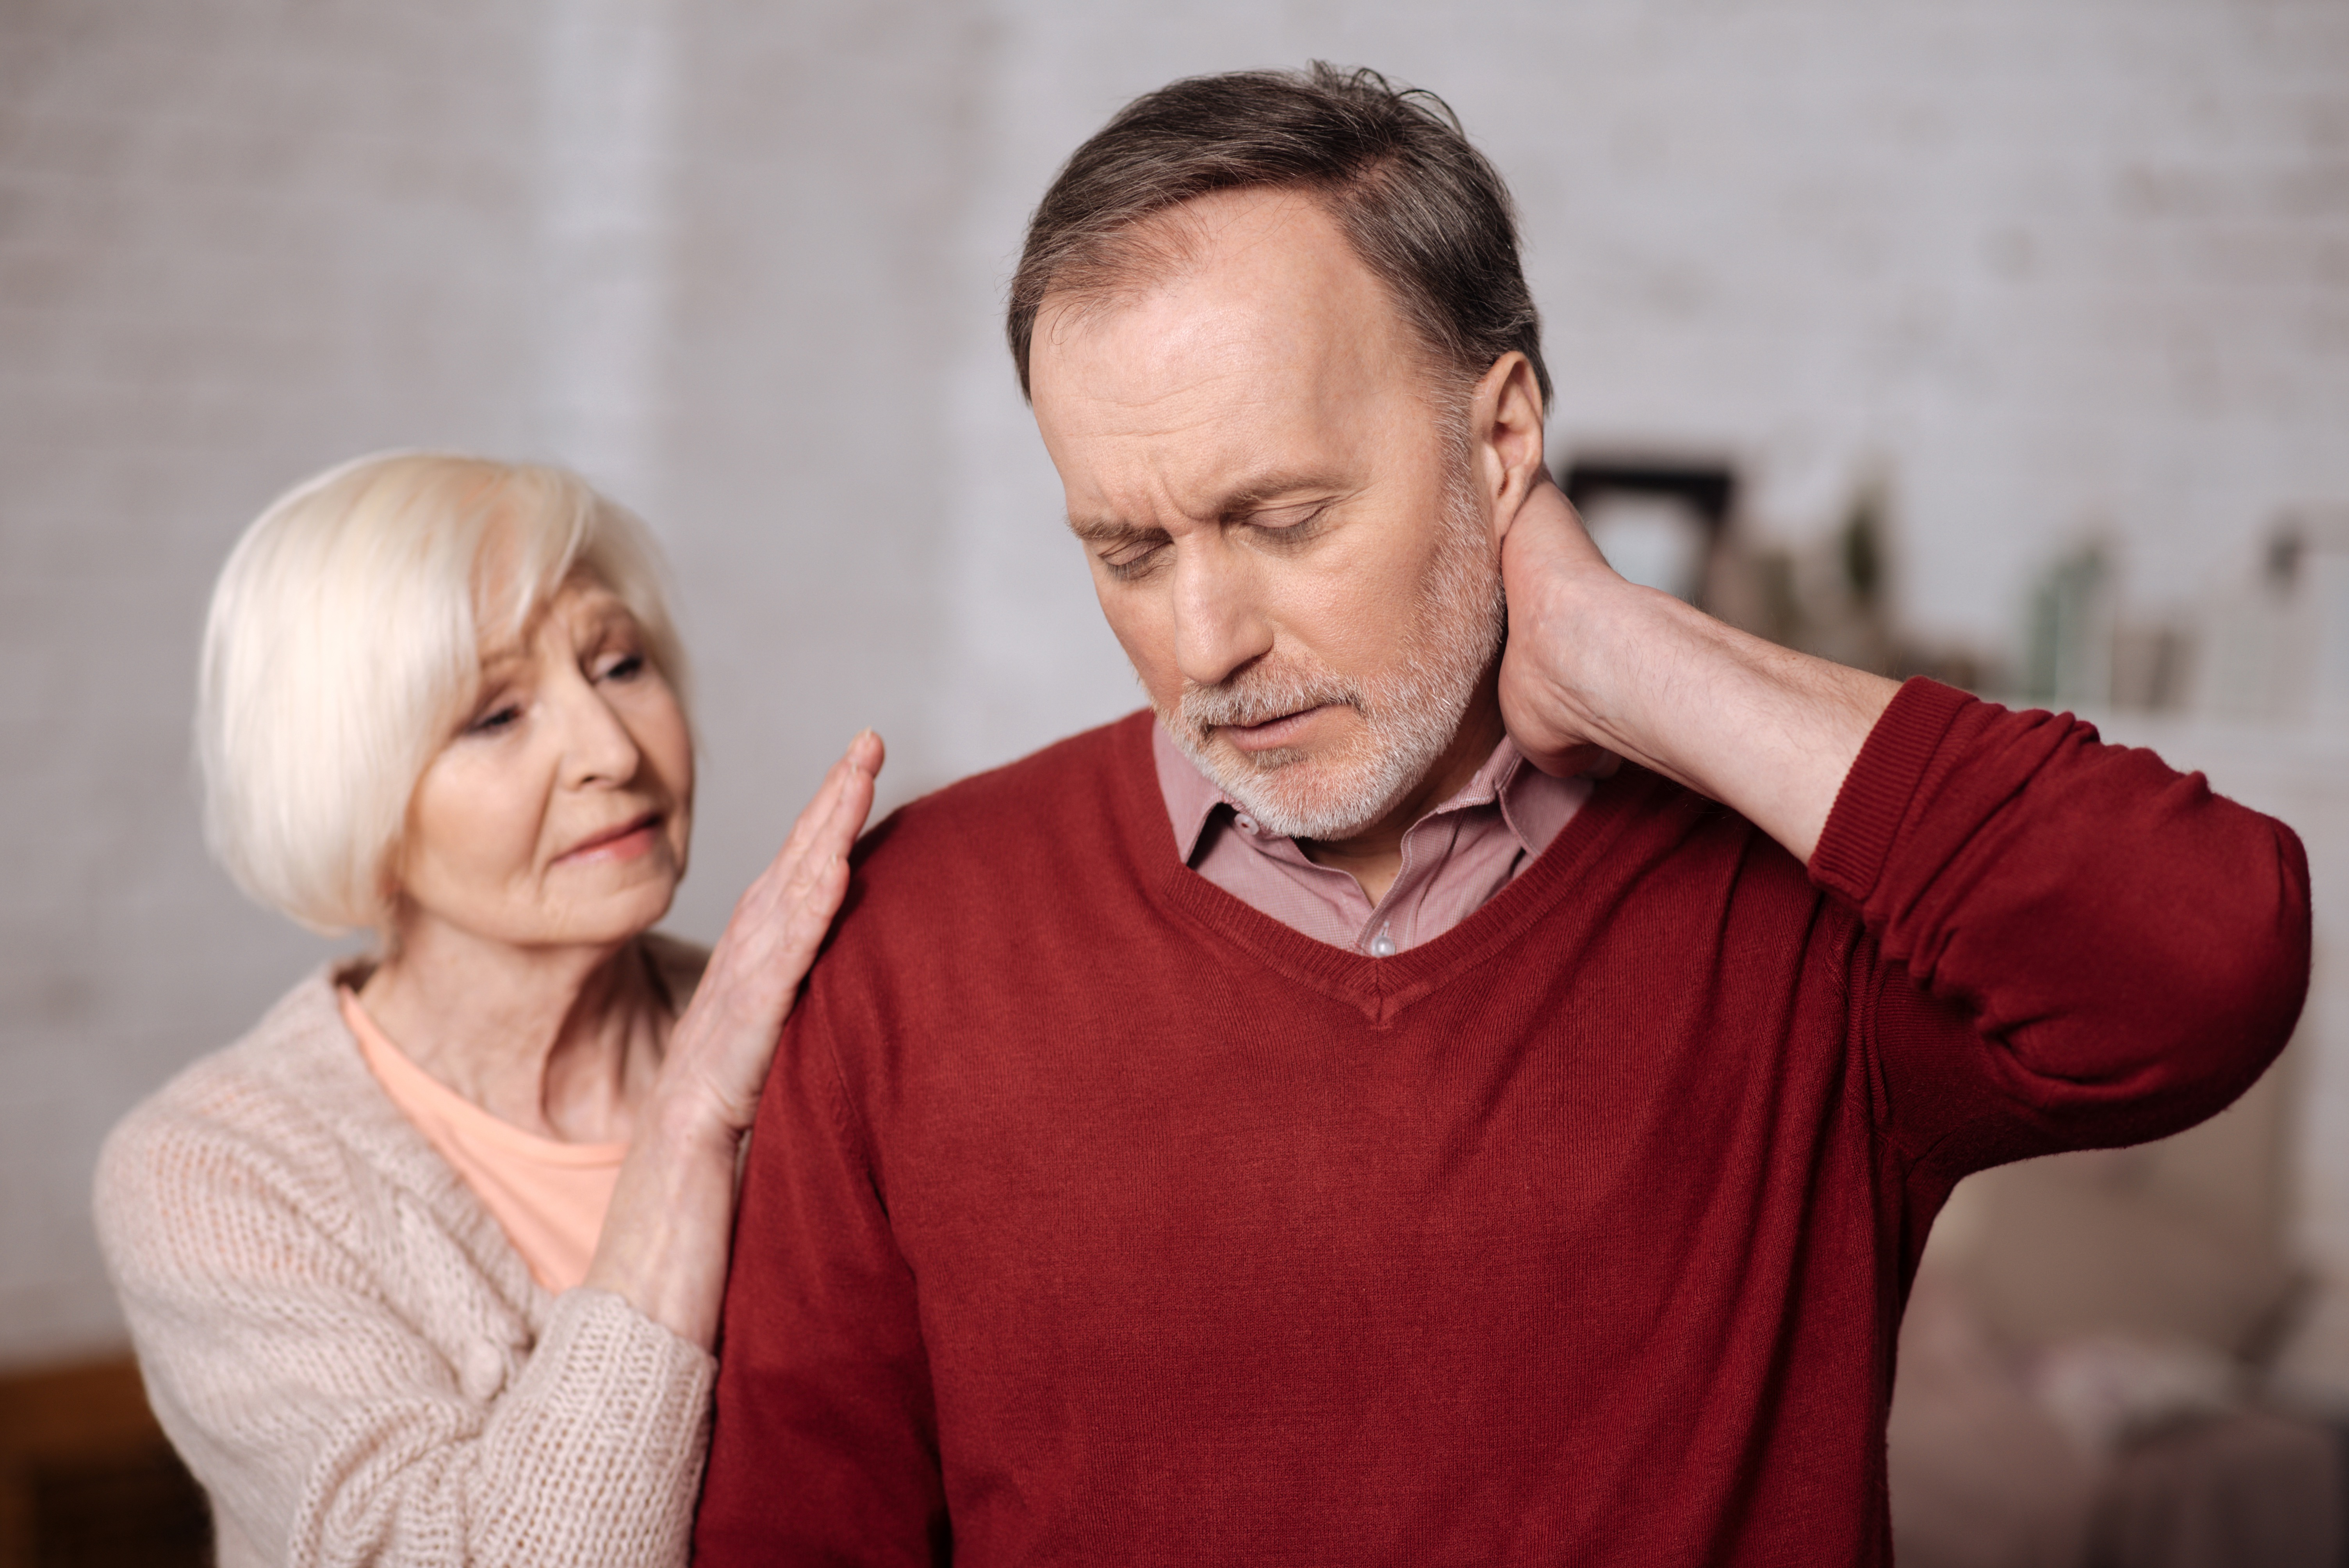 Neck Pain is commonly caused by strains and sprains